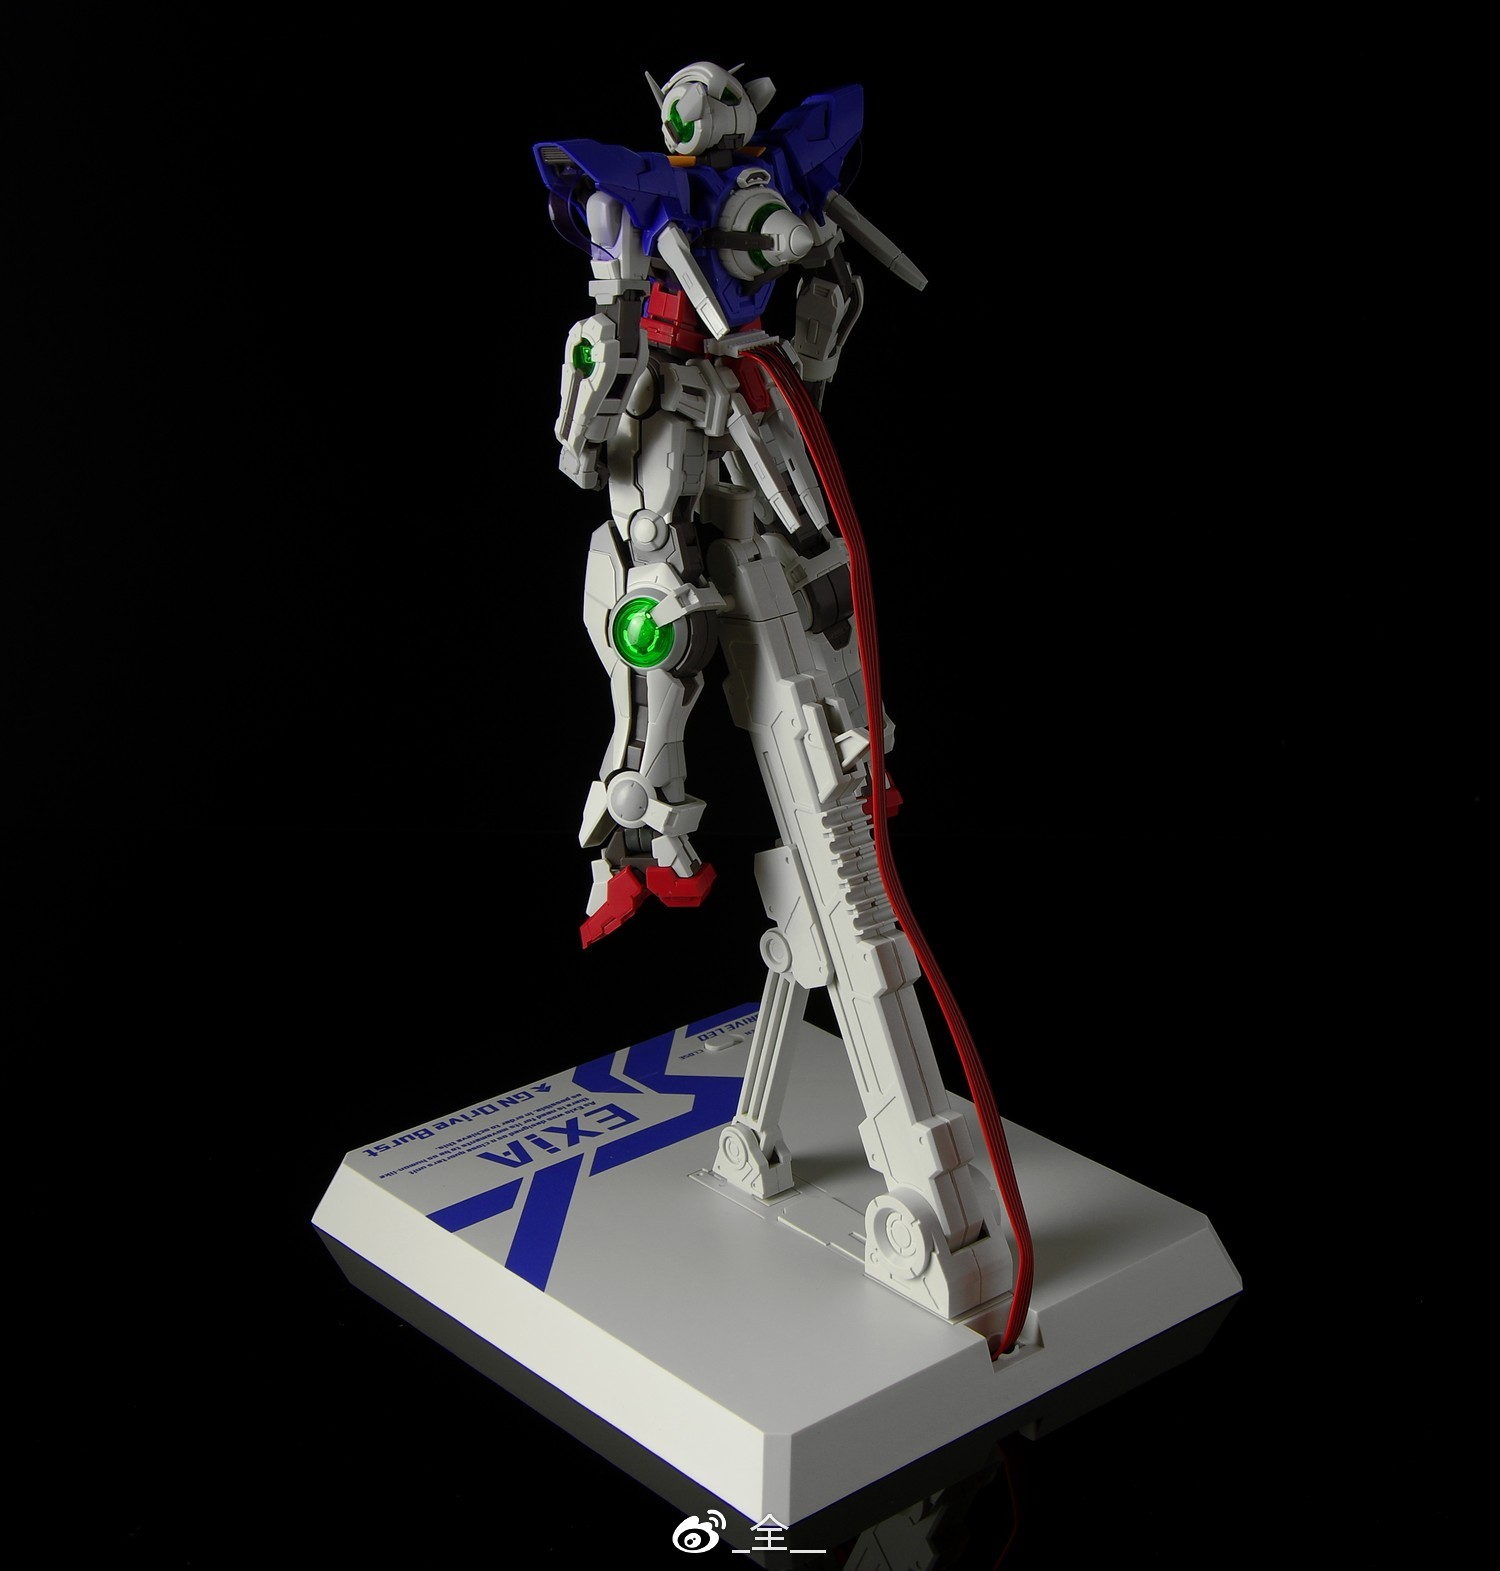 S269_mg_exia_led_hobby_star_inask_050.jpg